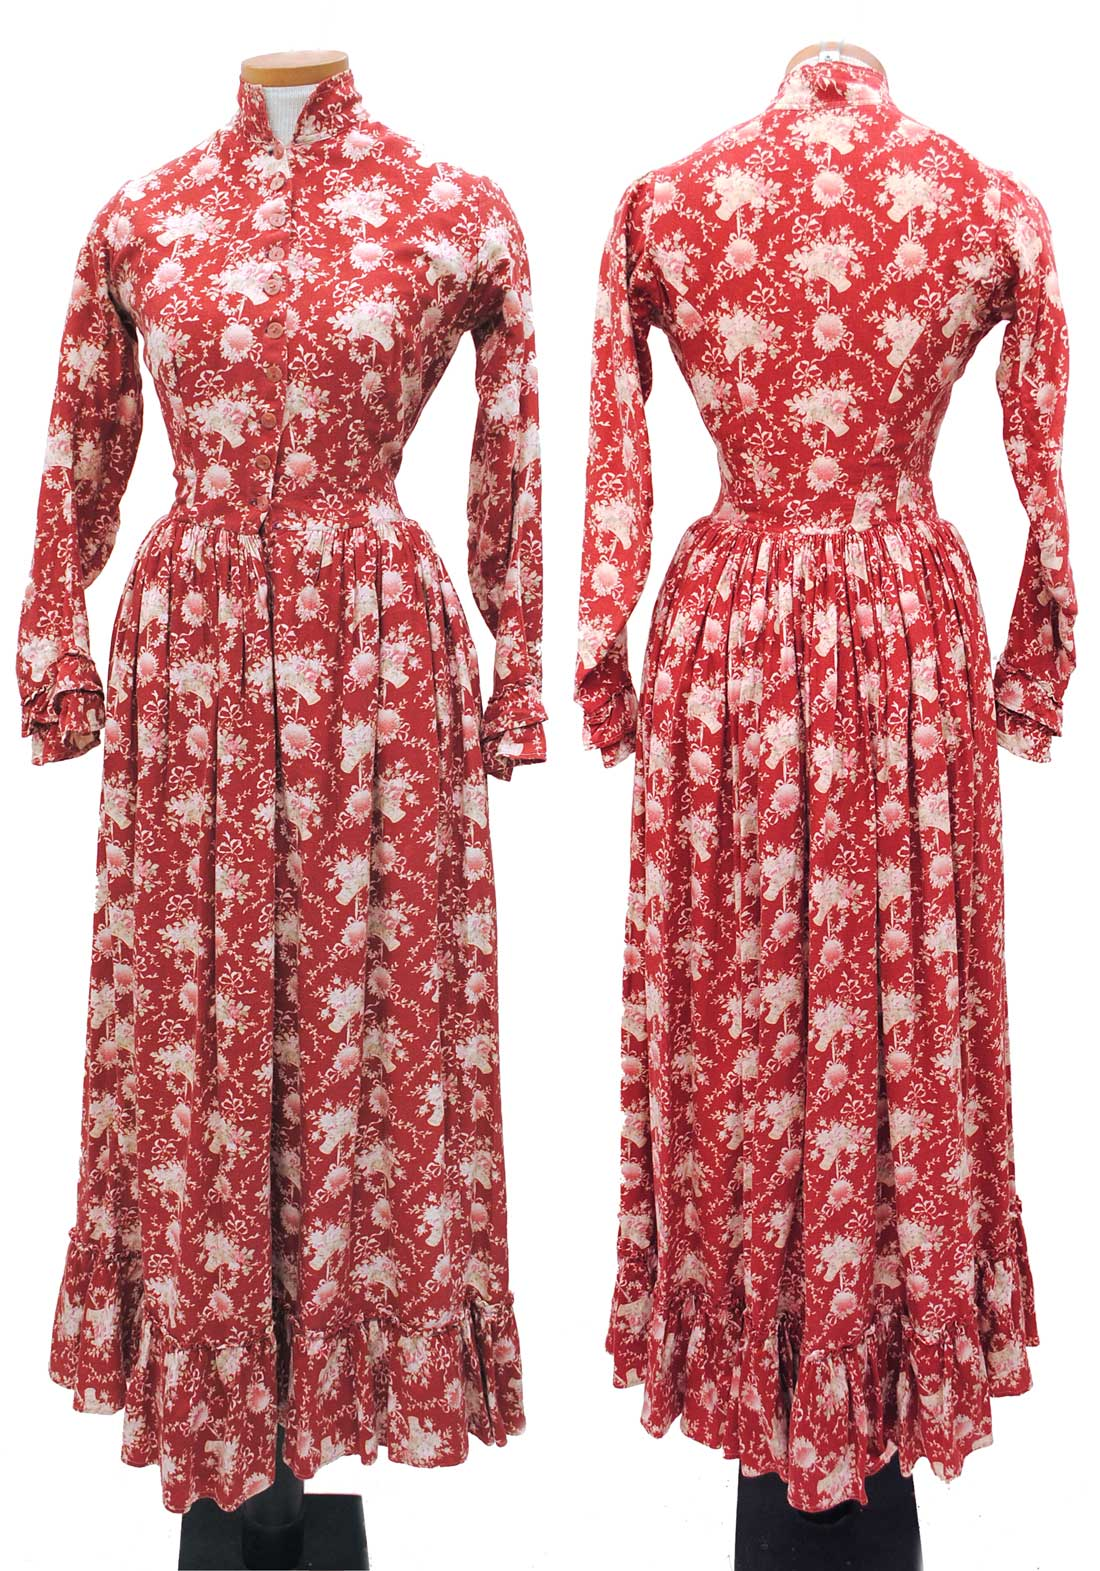 buy original victorian day dress, prairie dress in red cotton with a cornucopia pattern print